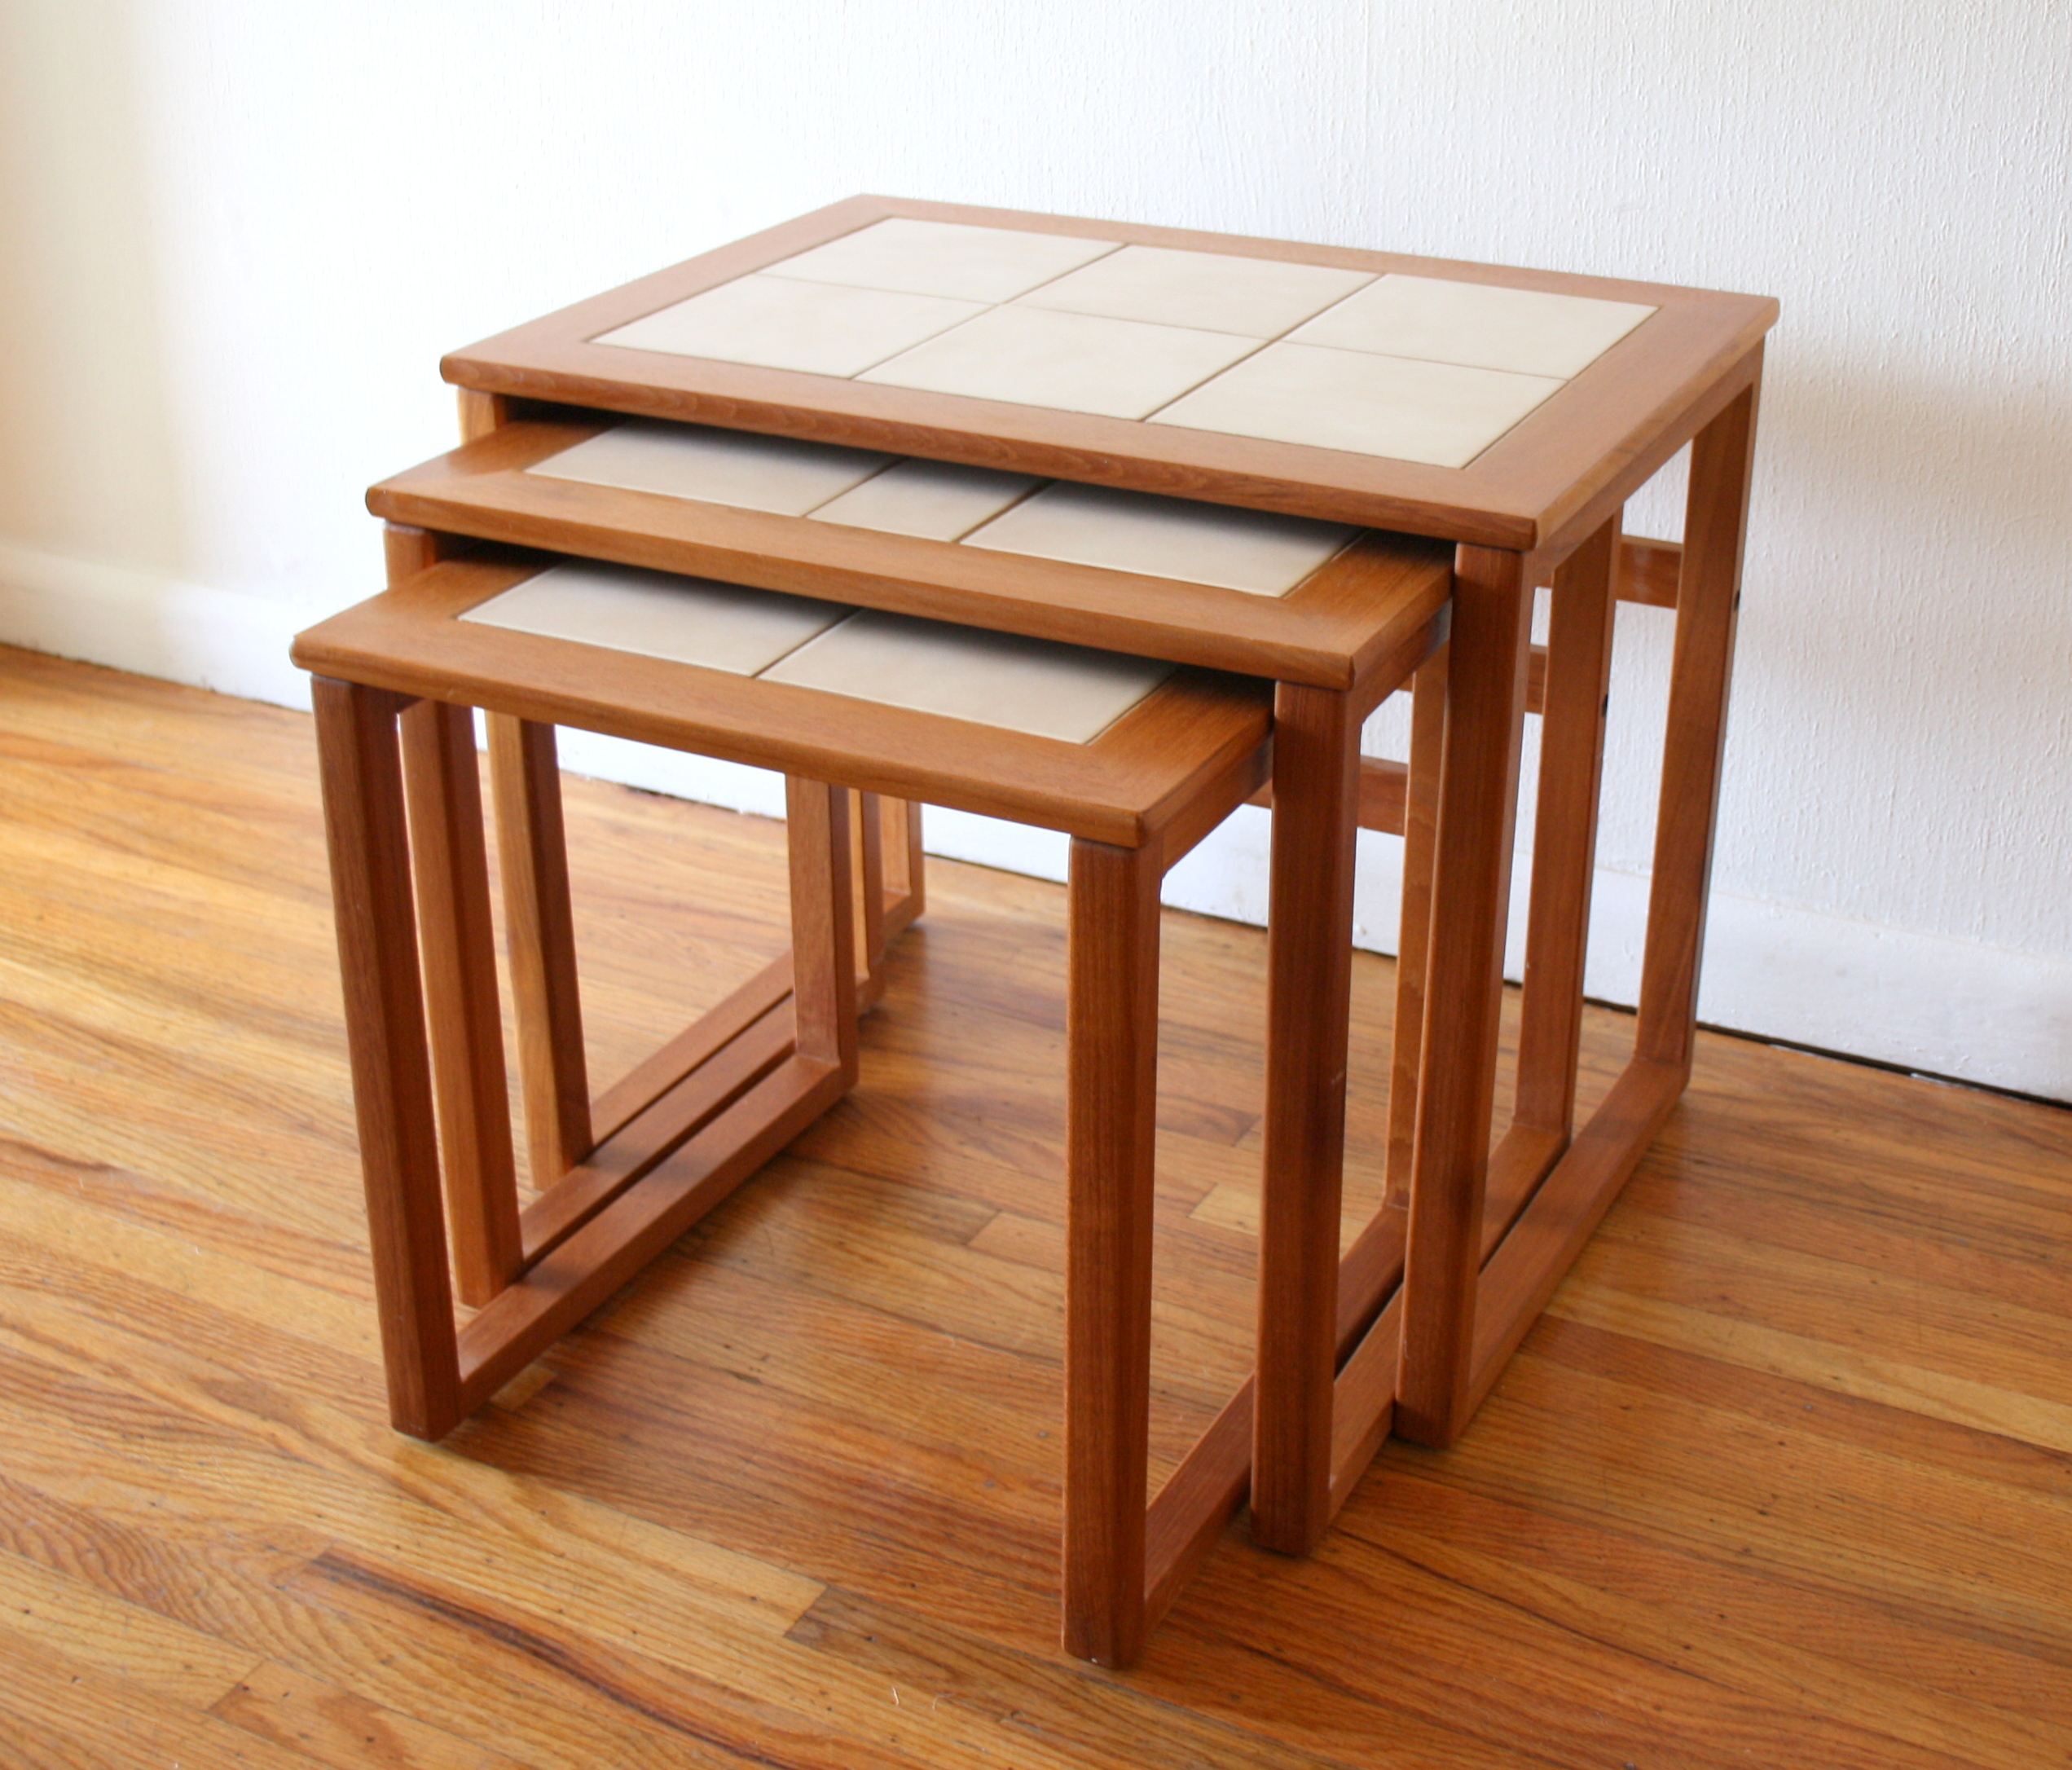 Danish teak tile nesting tables 1.JPG